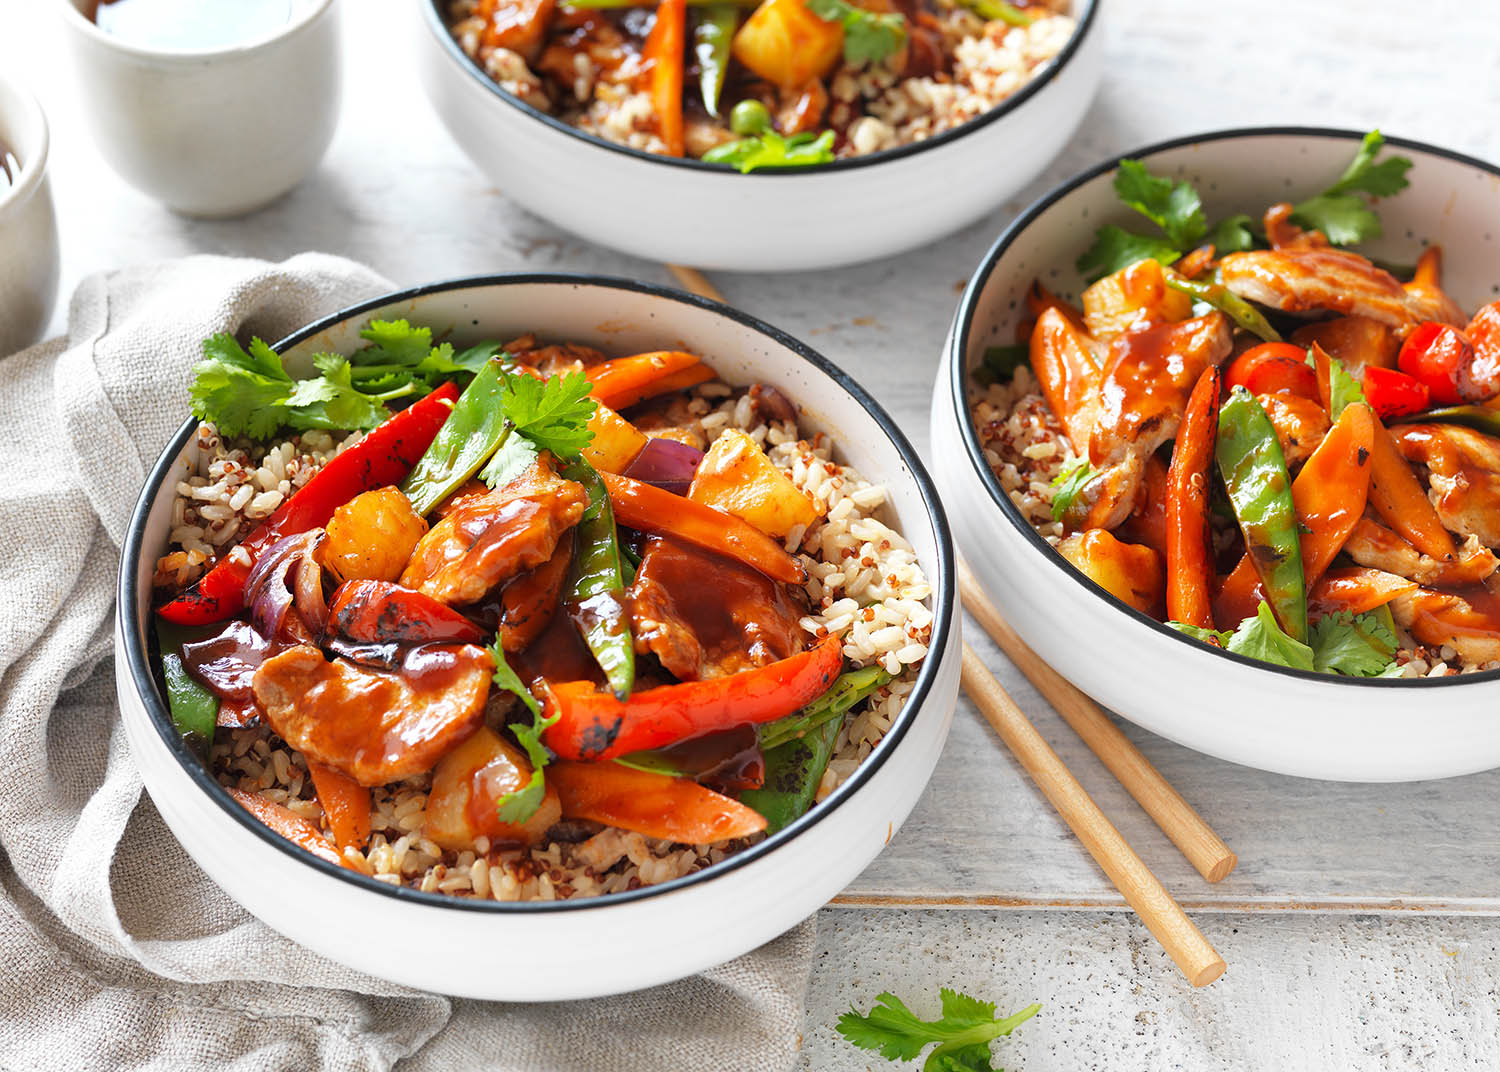 Sweet and sour pork by celebrate health